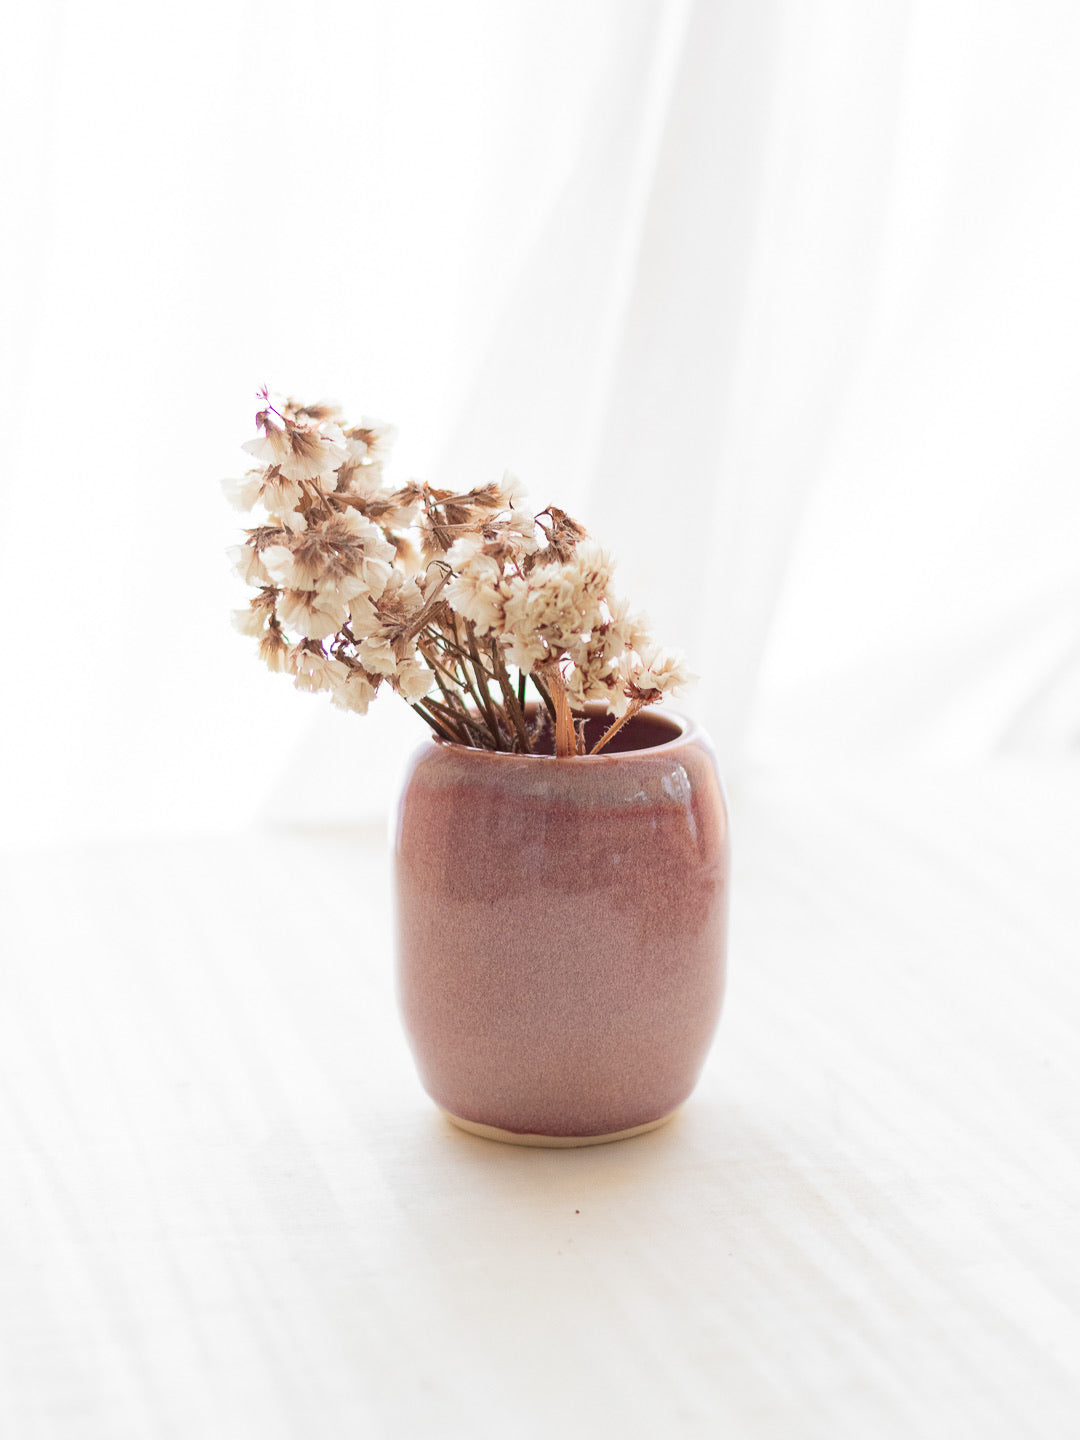 The Pink Petite Vase